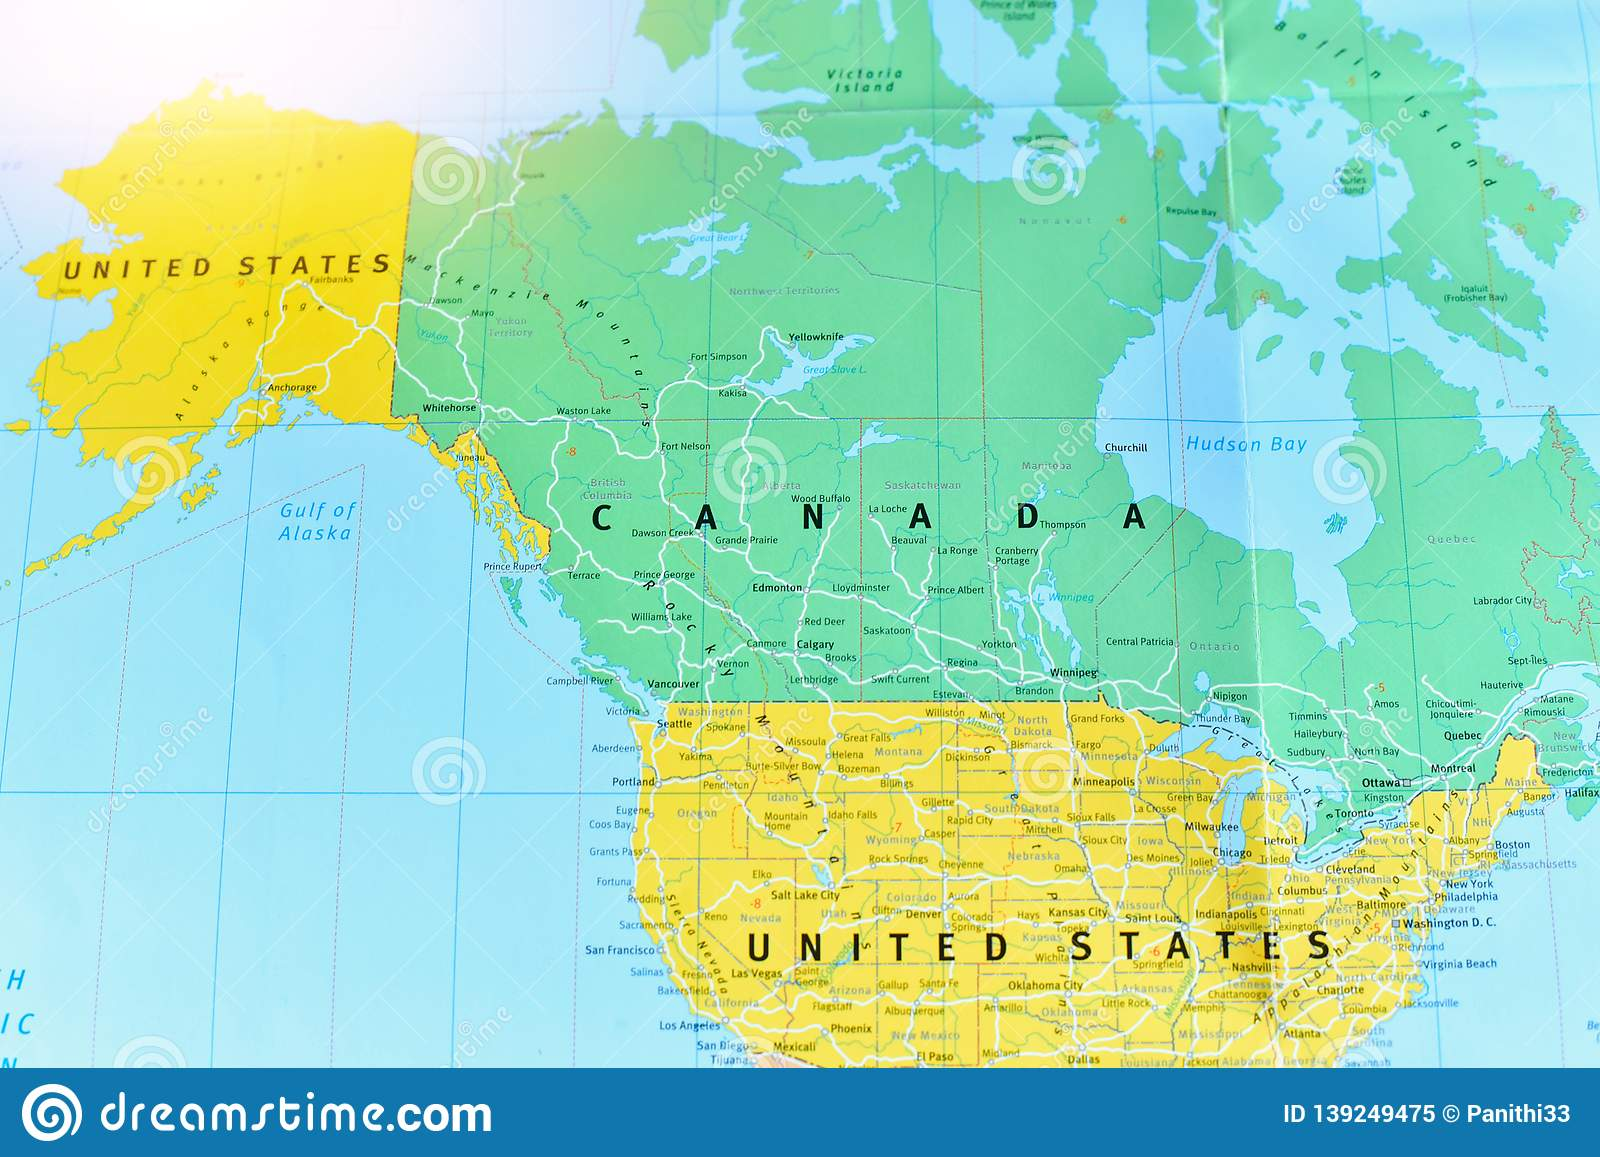 Canada Map Of States.Political Map Of Canada And The United States Stock Image Image Of